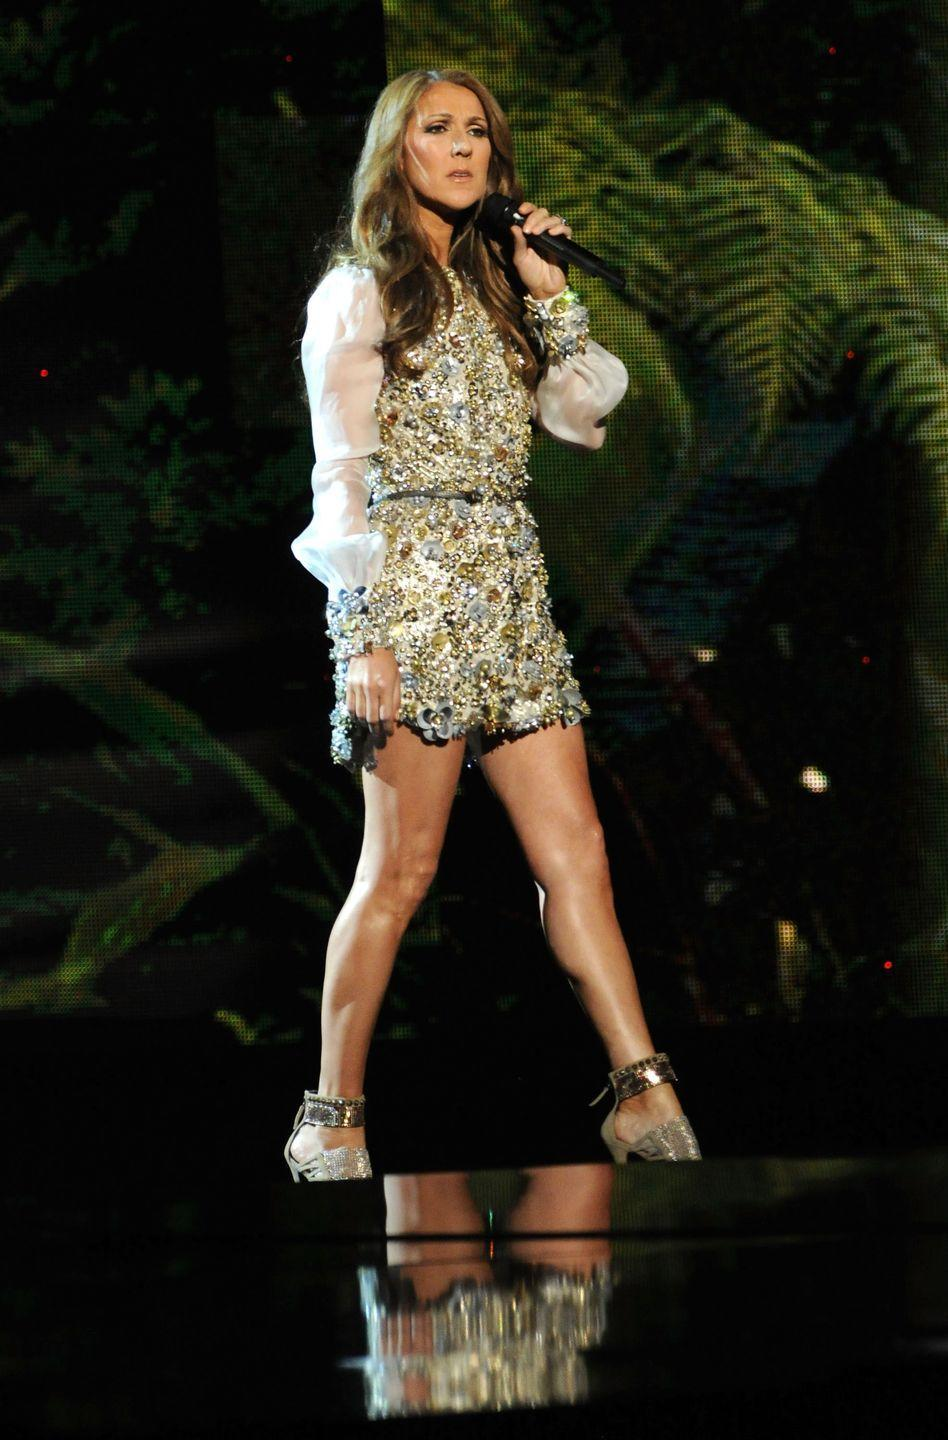 <p>No stranger to gems and baubles, Dion wore a beaded minidress with translucent bell sleeves to perform for the Grammy's. The elaborate beading is more and more beautiful the longer you look.</p>